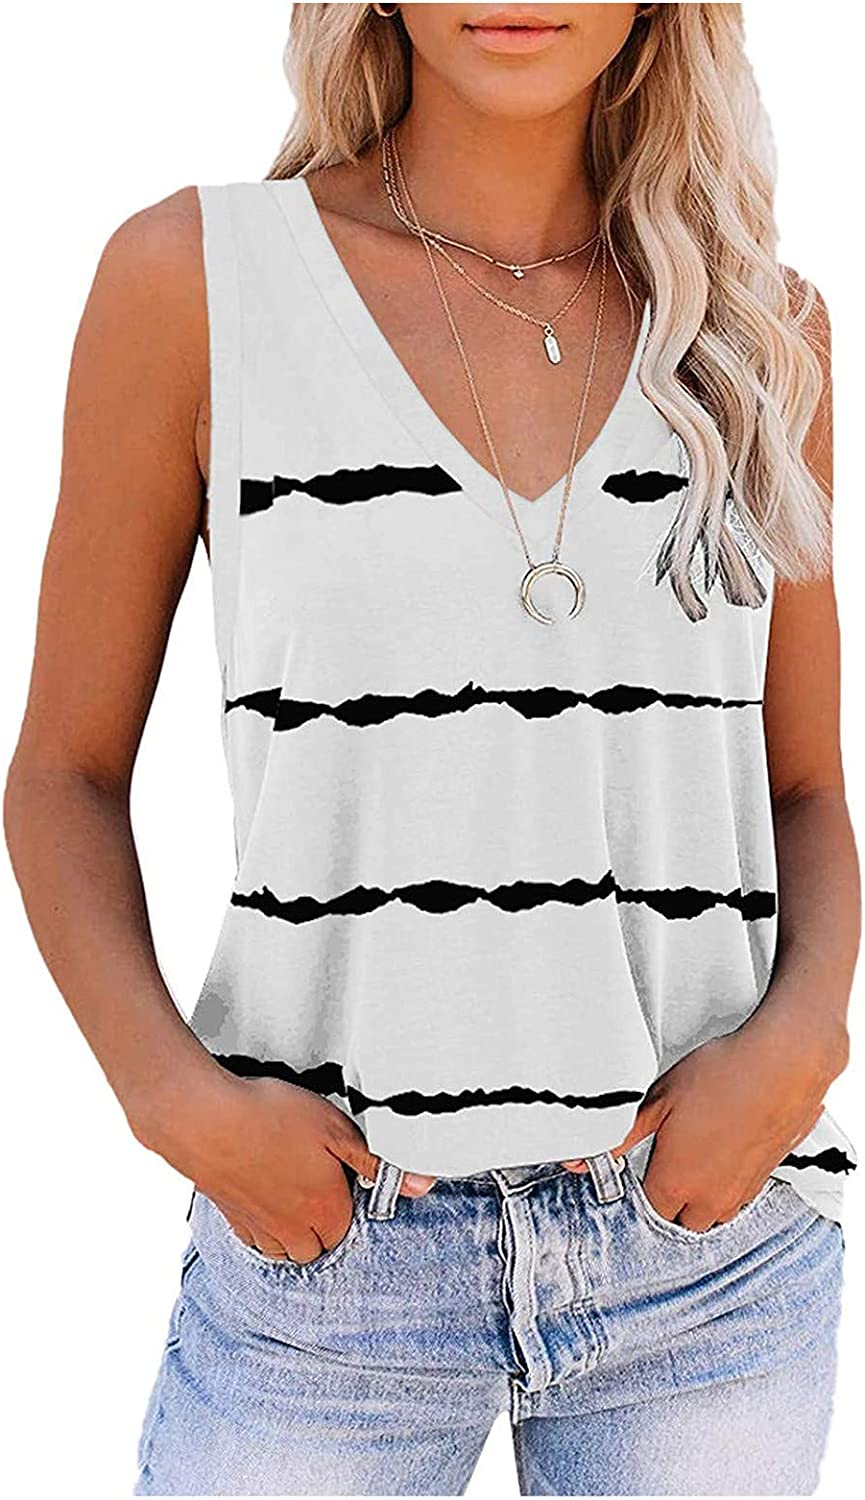 Summer Tops for Women Trendy,Women Tank Tops Womens Cute Printed Vest Tshirt Sleeveless Workout Blouse Casual Summer Tank Top Tunic Tee White